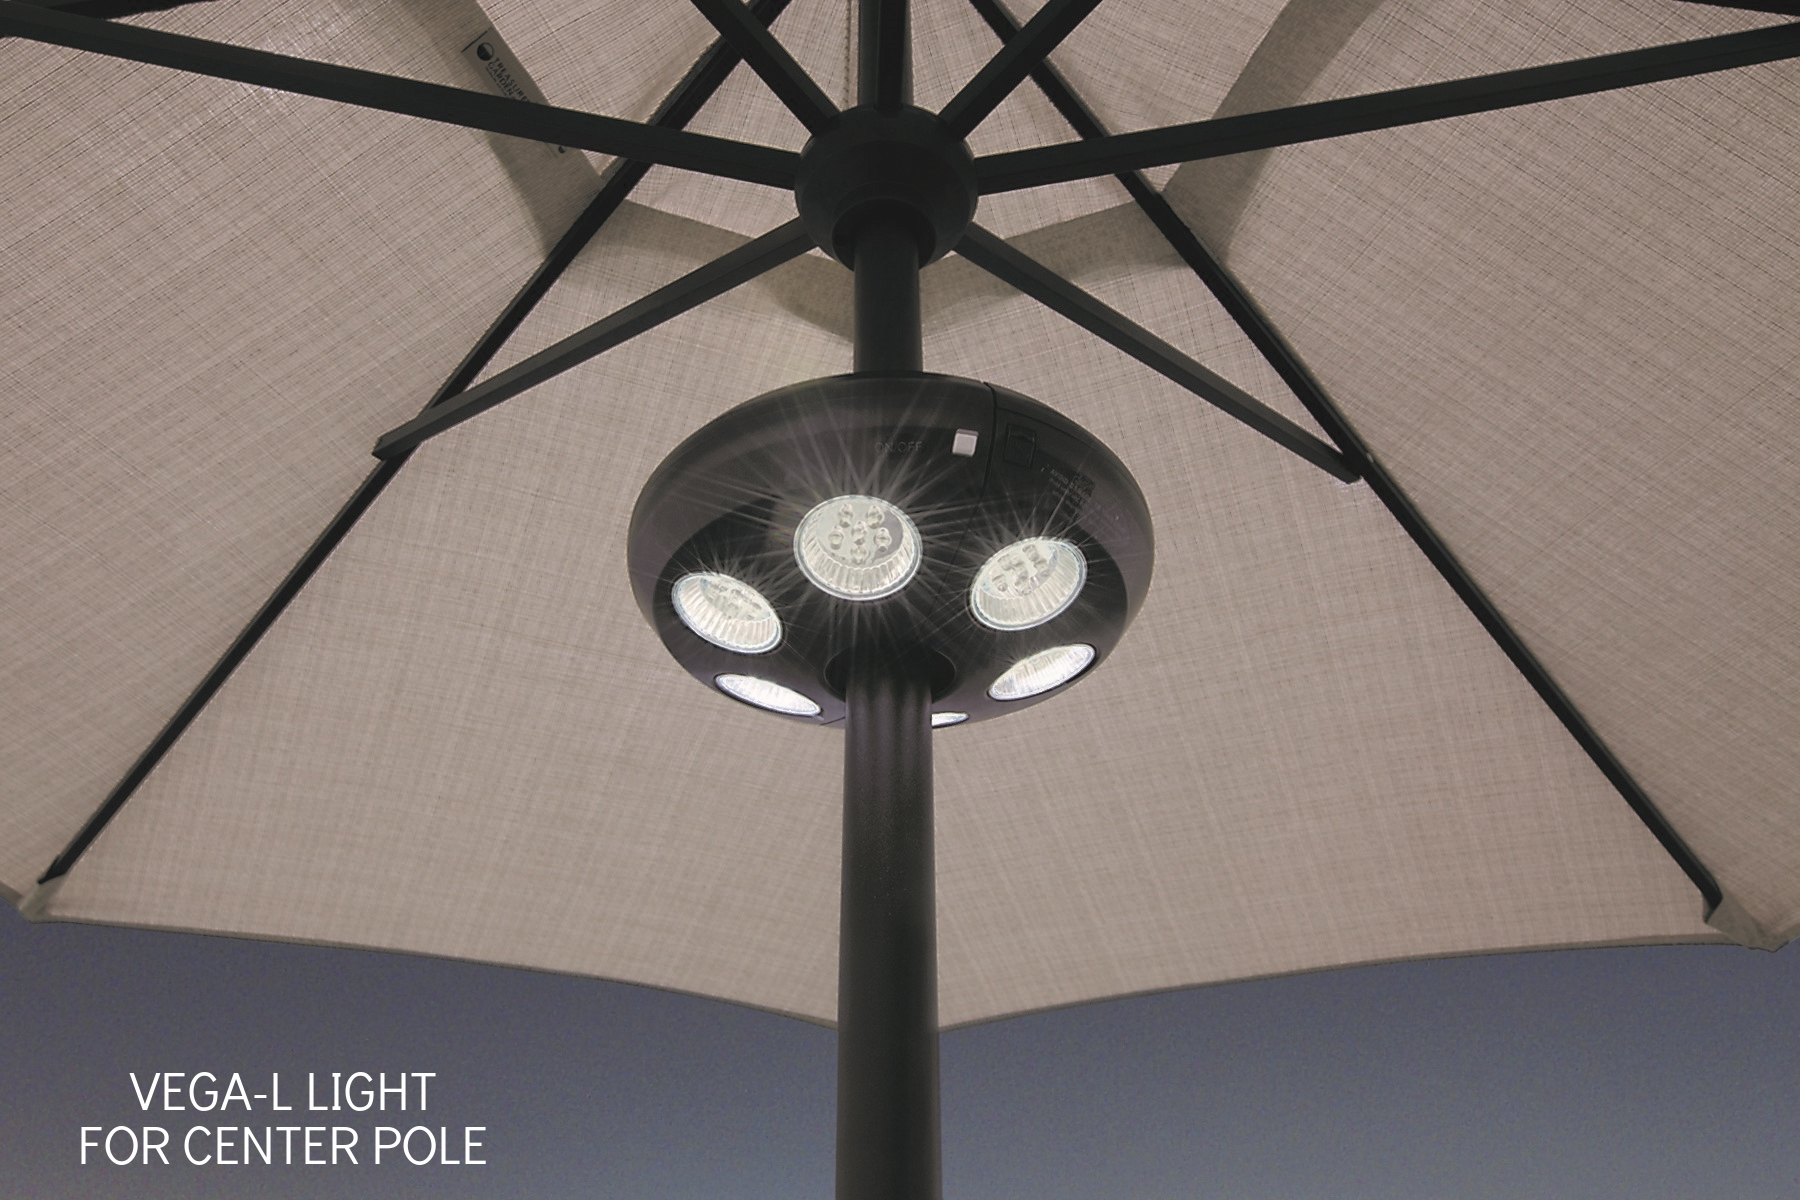 center pole light 2.jpg